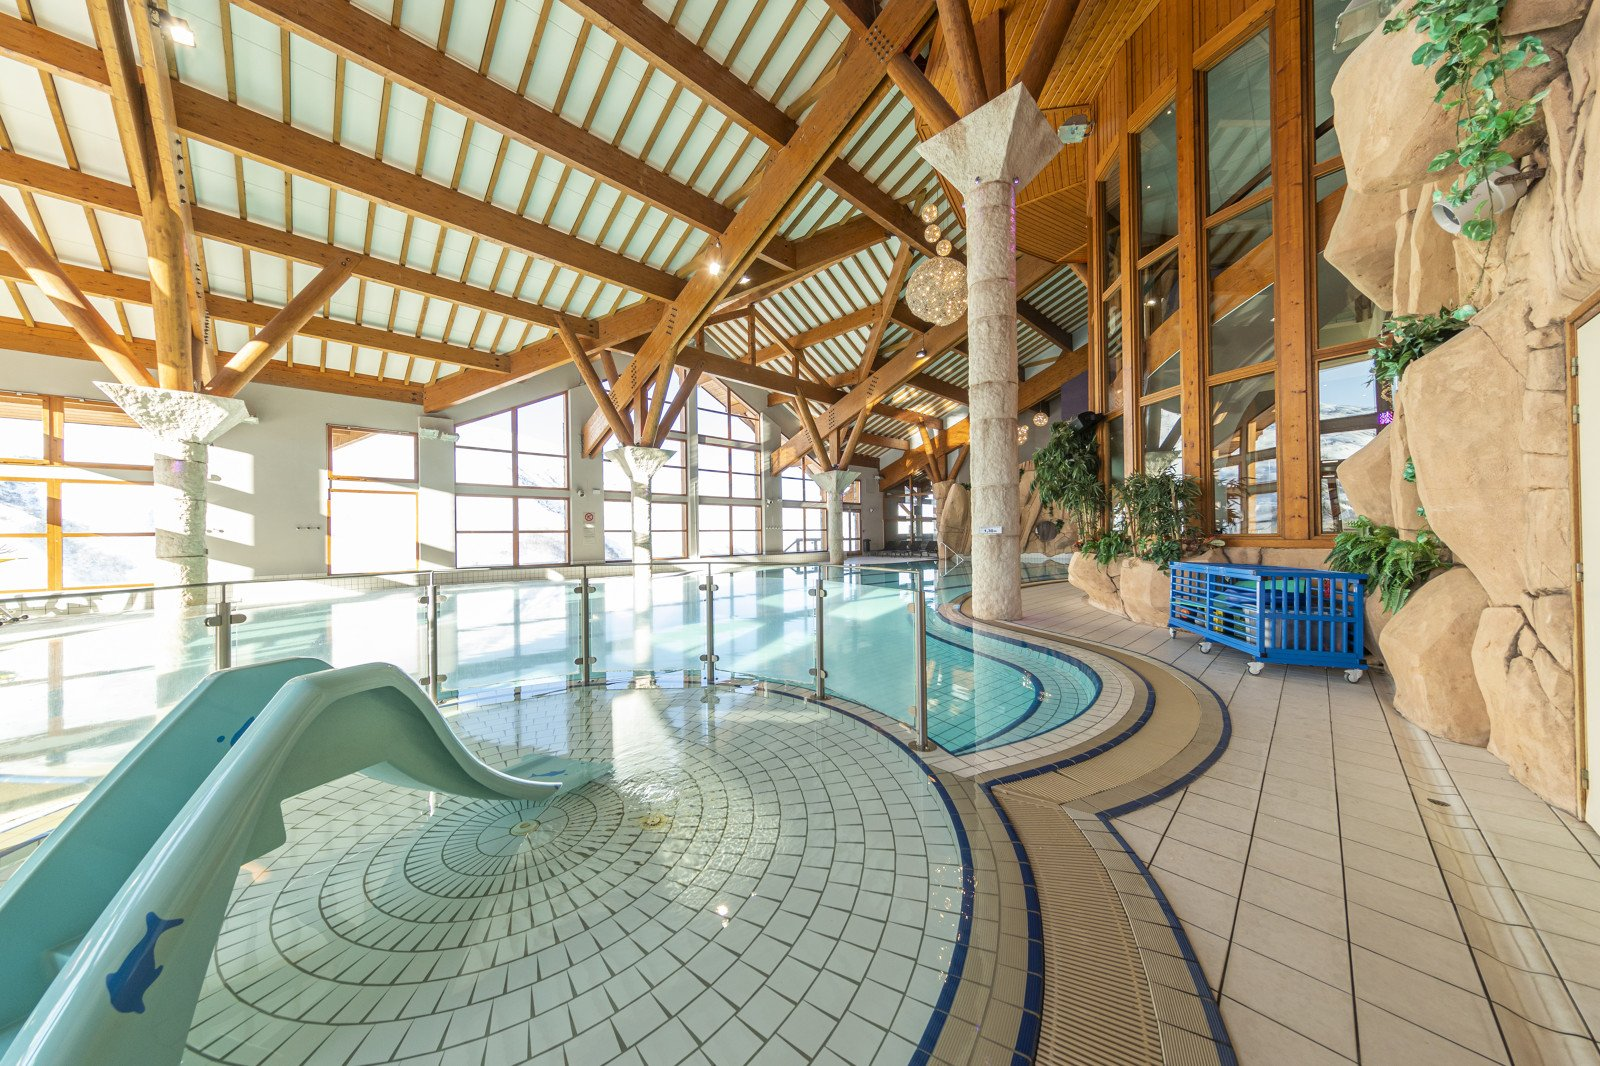 Centre sportif offering a swimming pool for kids and sauna, hammam, jacuzzis and gym for adults.